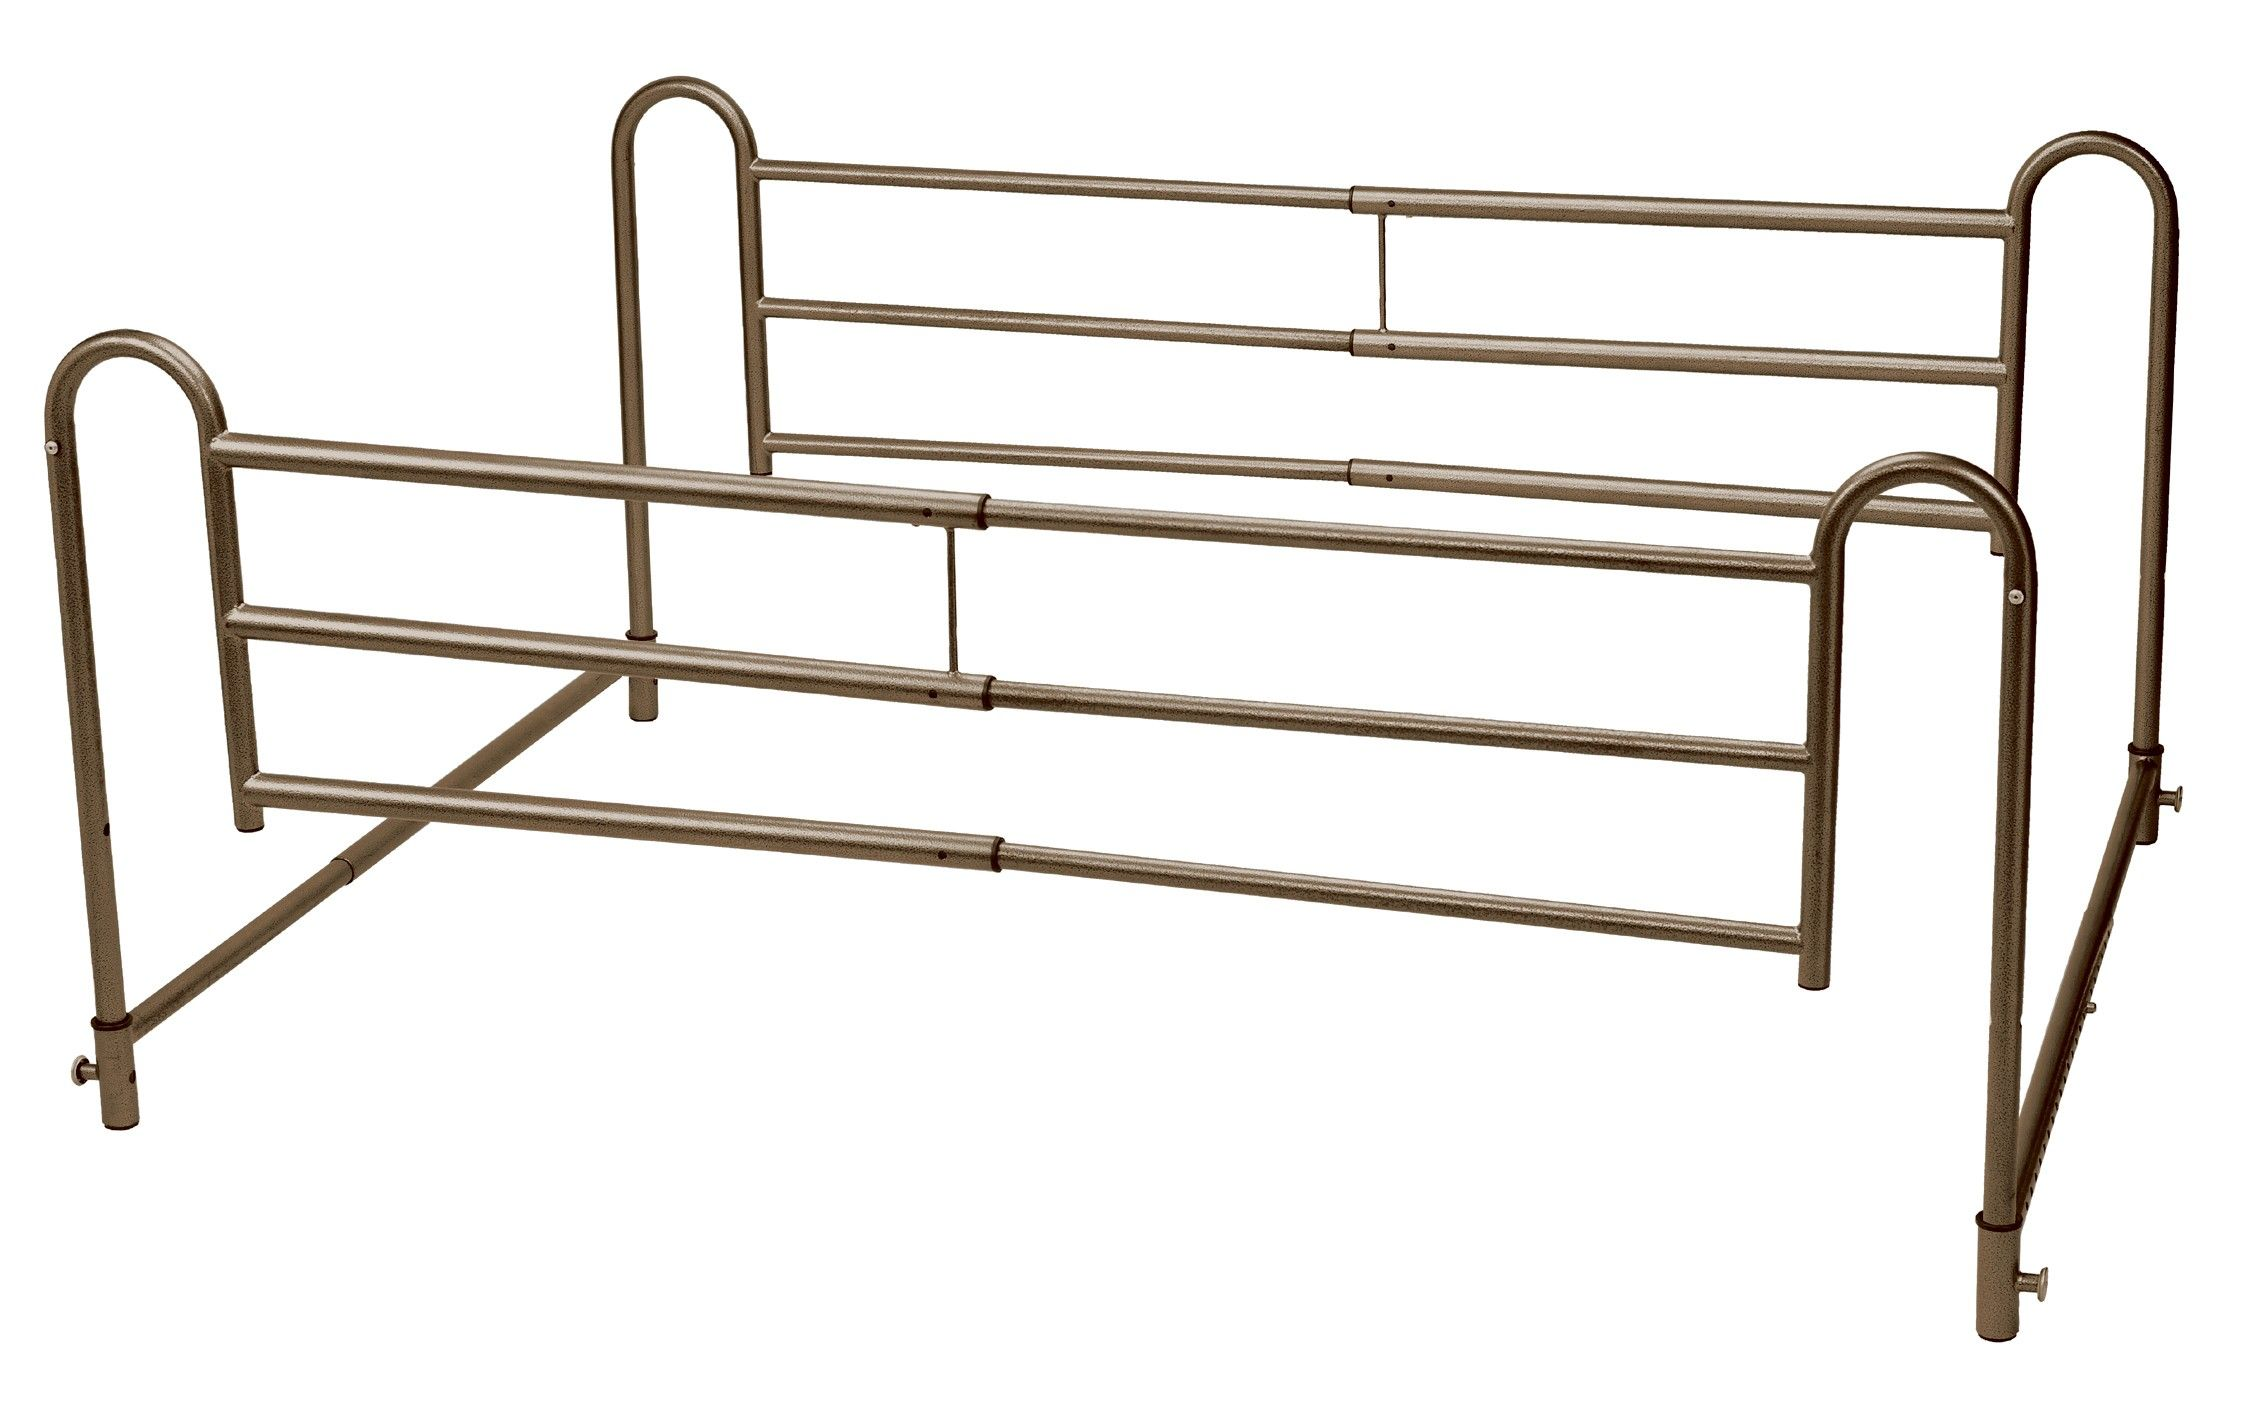 Main Image Bed styling, Bed rails, Adjustable beds